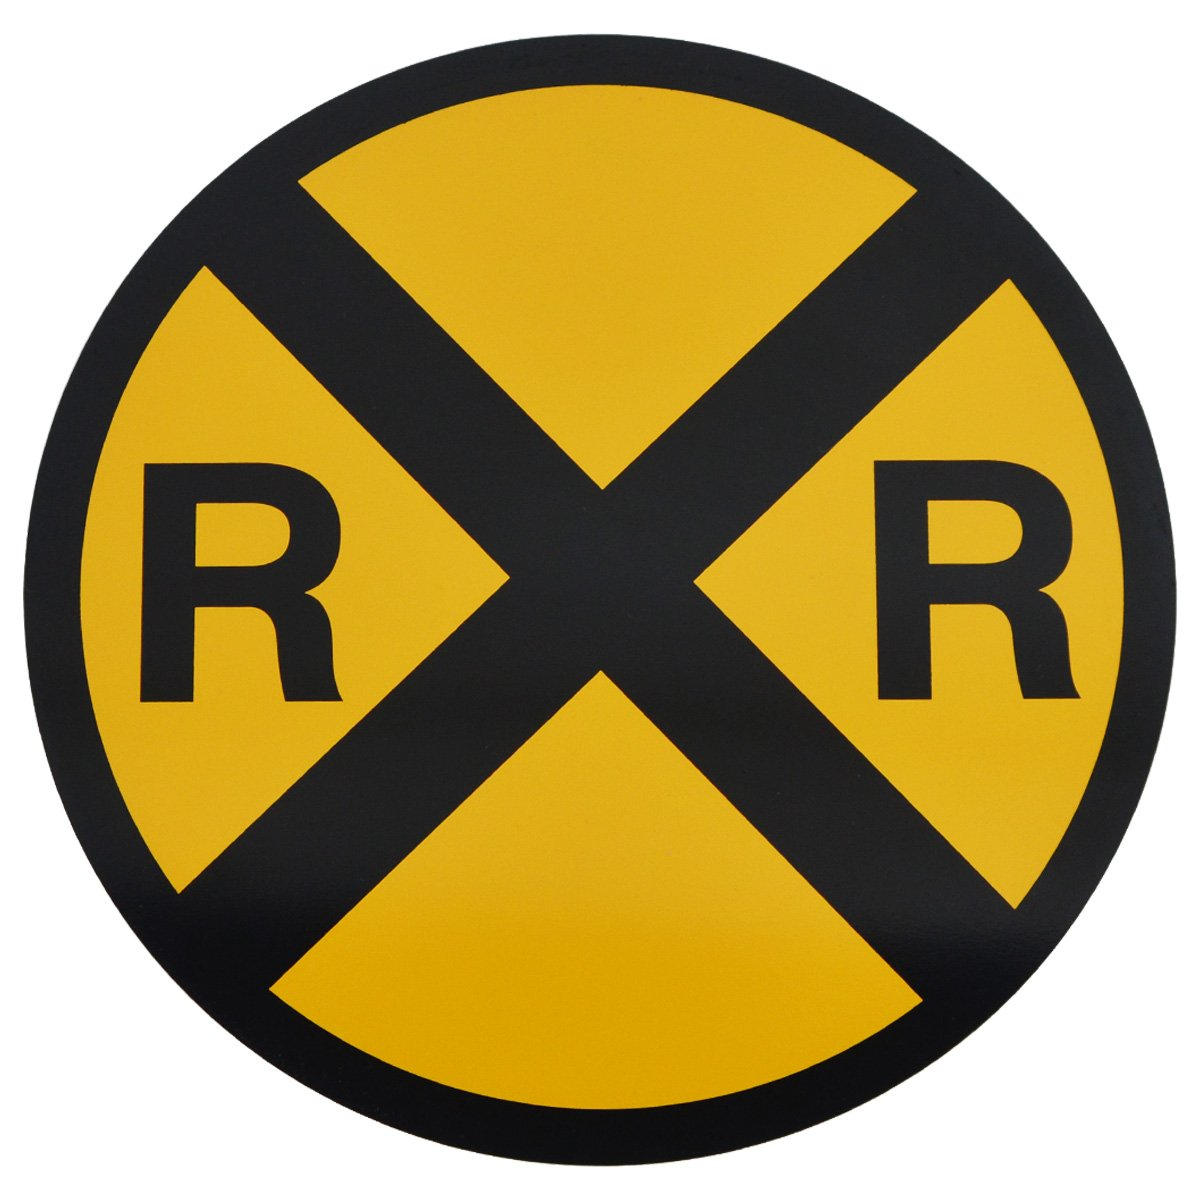 Amazon.com: Yellow Metal Caution Railroad Crossing Road Street Sign ...